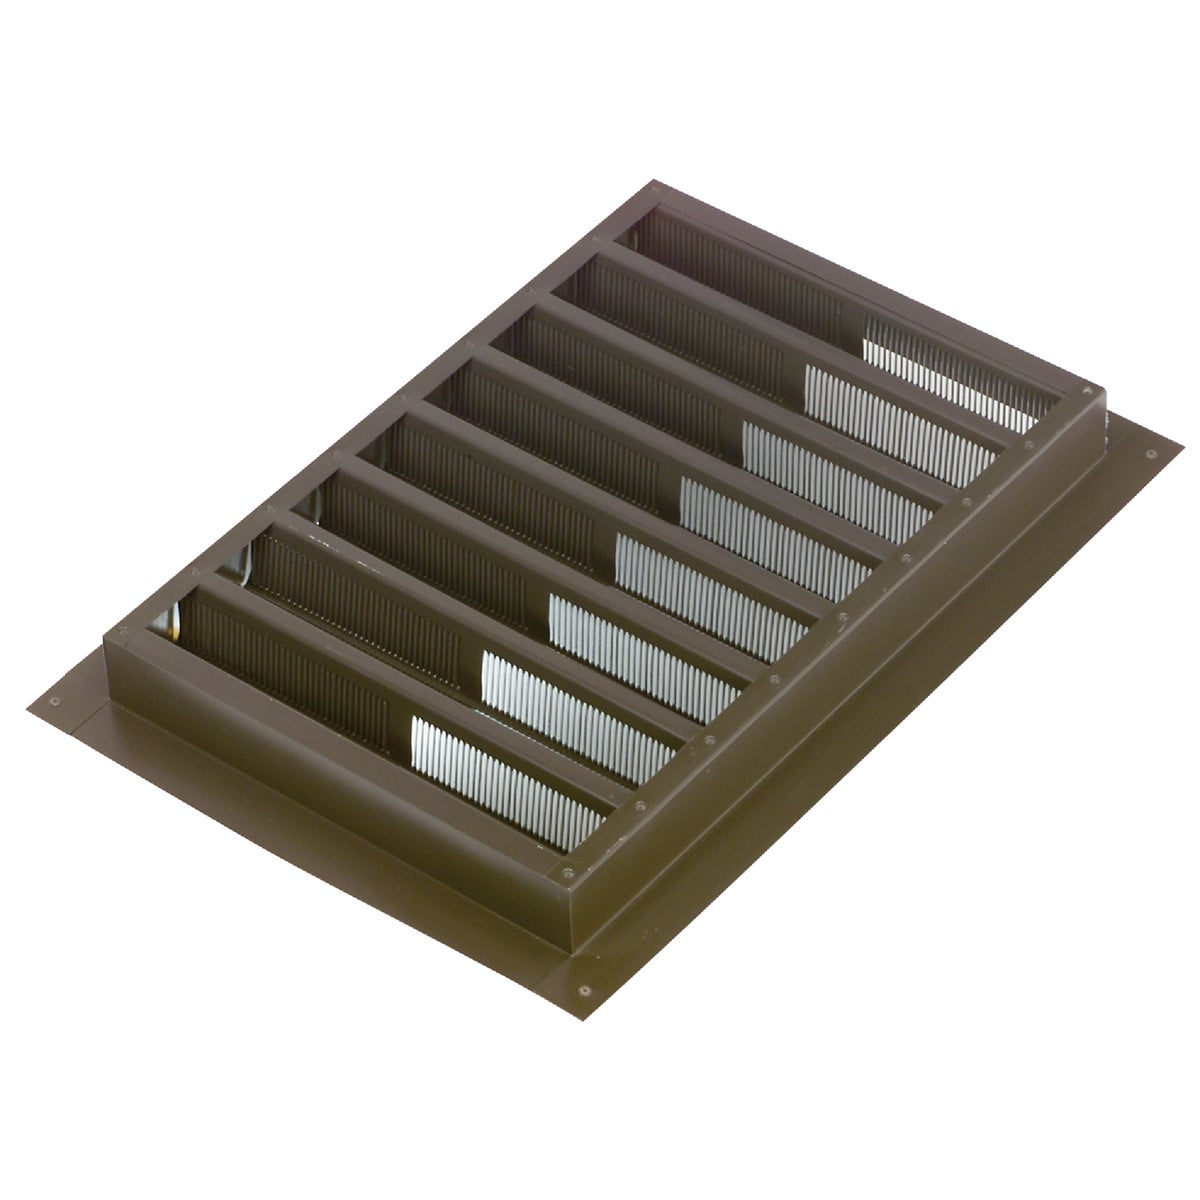 12X12 BRN SQ ATTIC VENT - 553520 by Noll/norwesco Llc